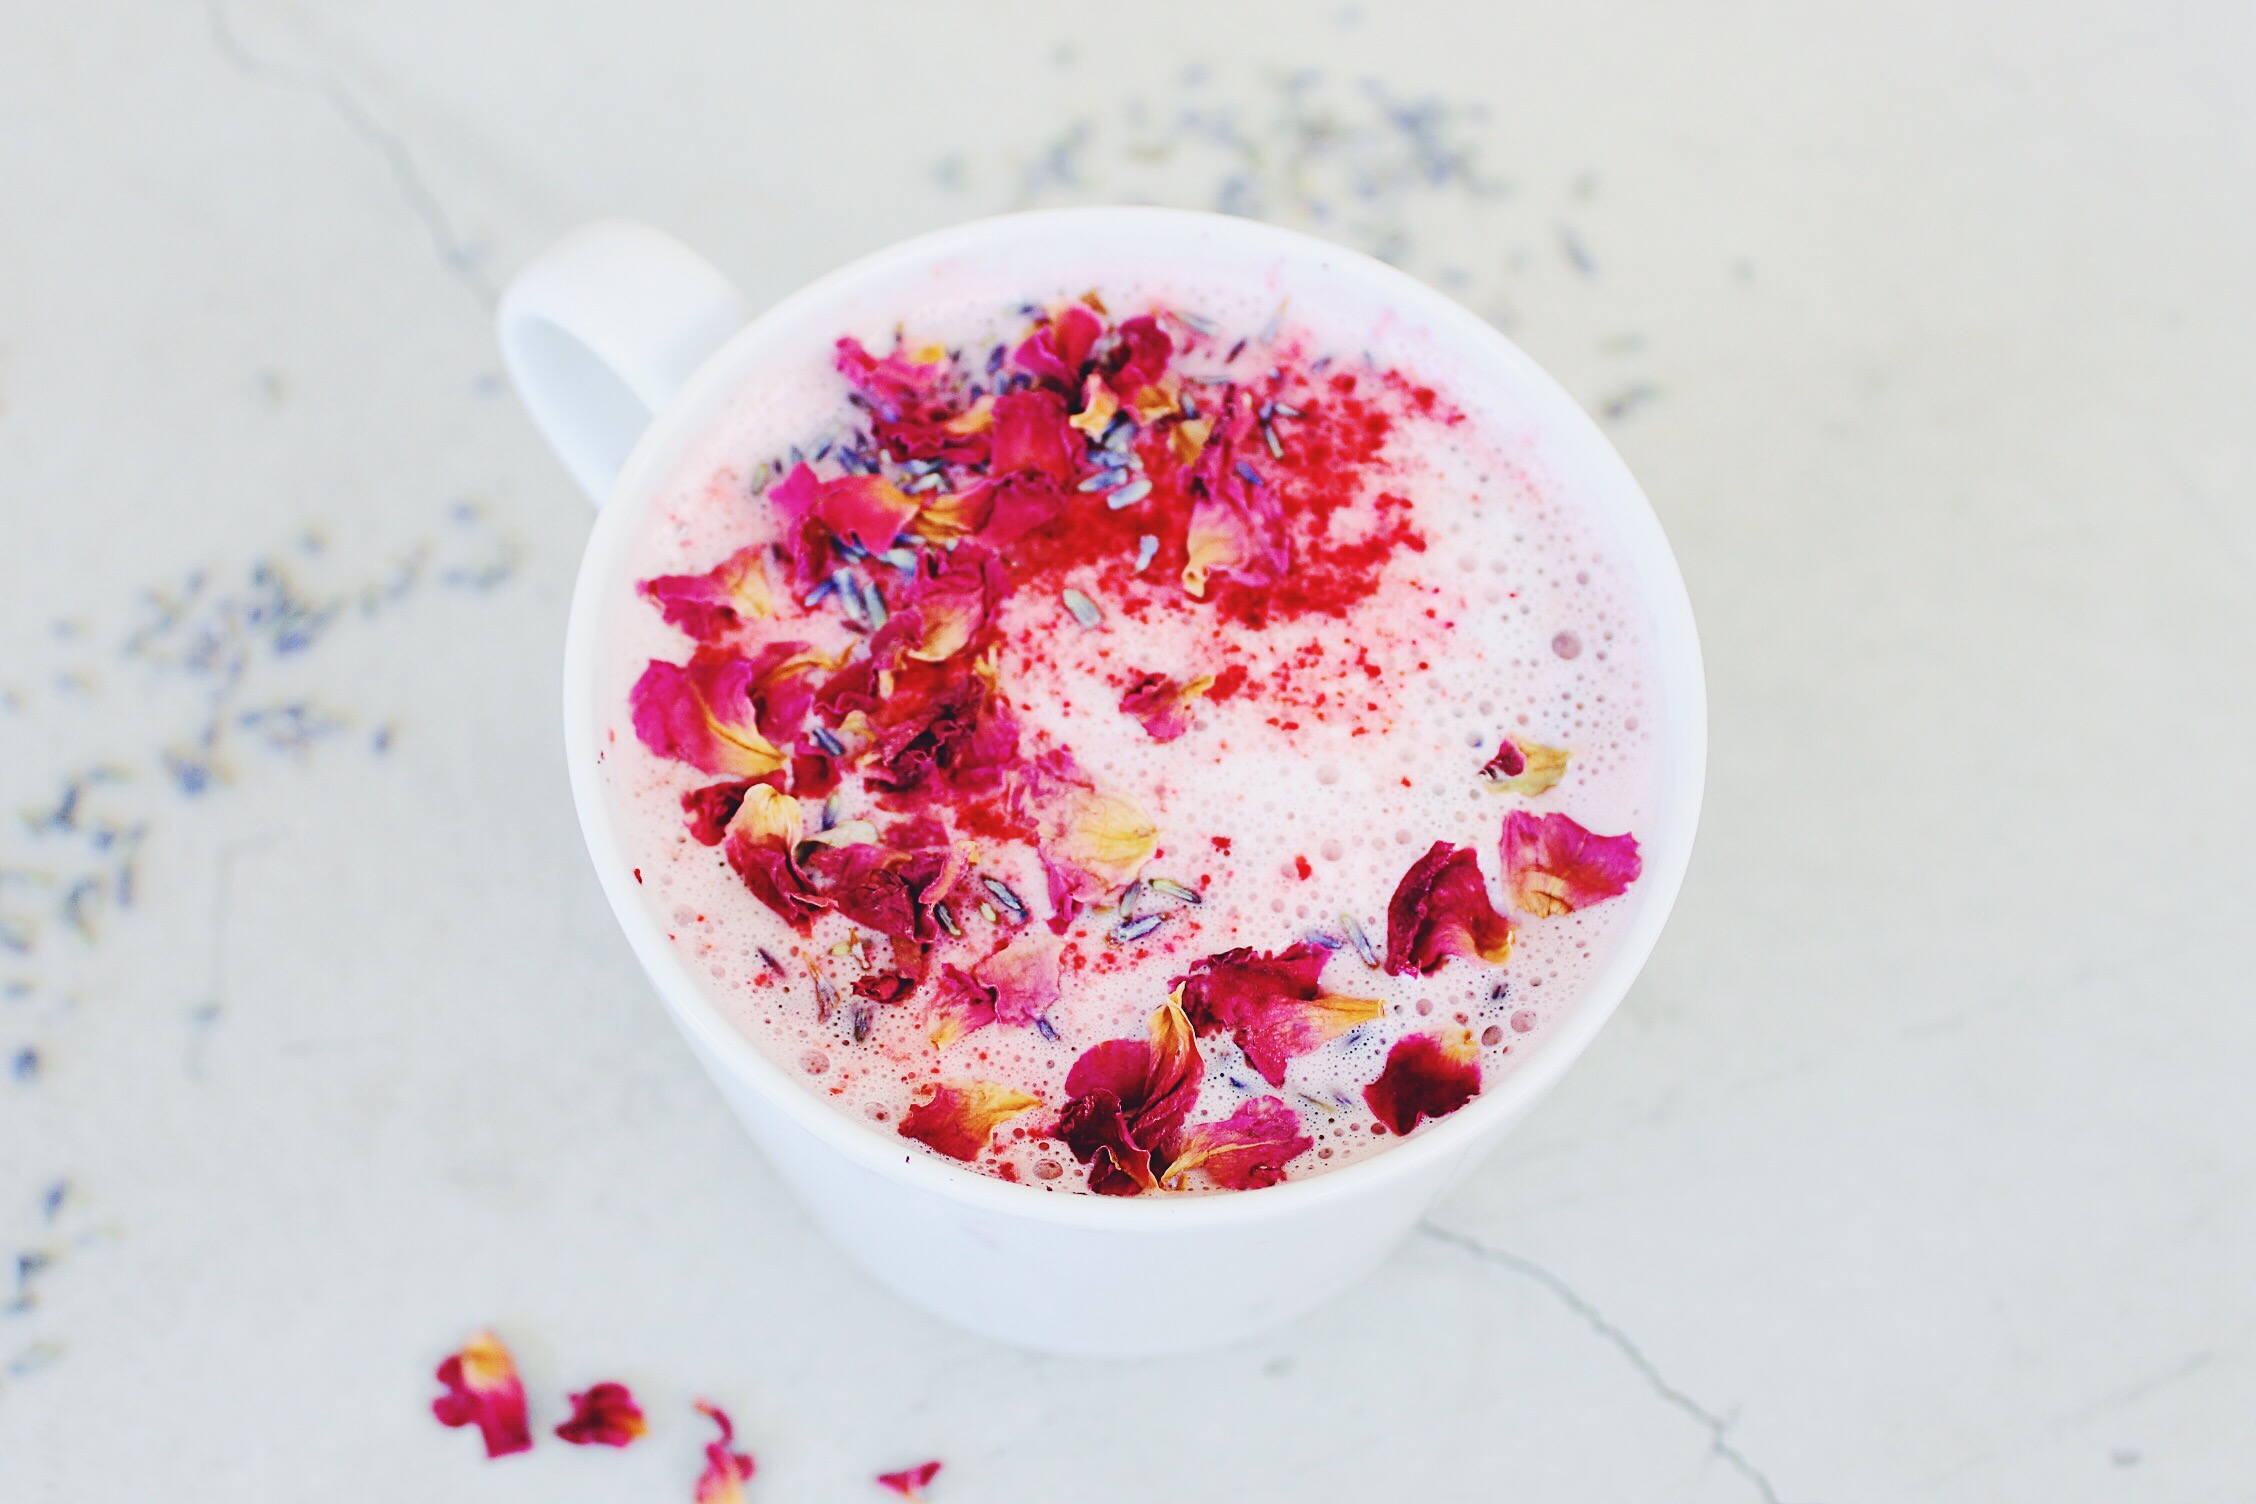 Beet, Rose & Maca Latte